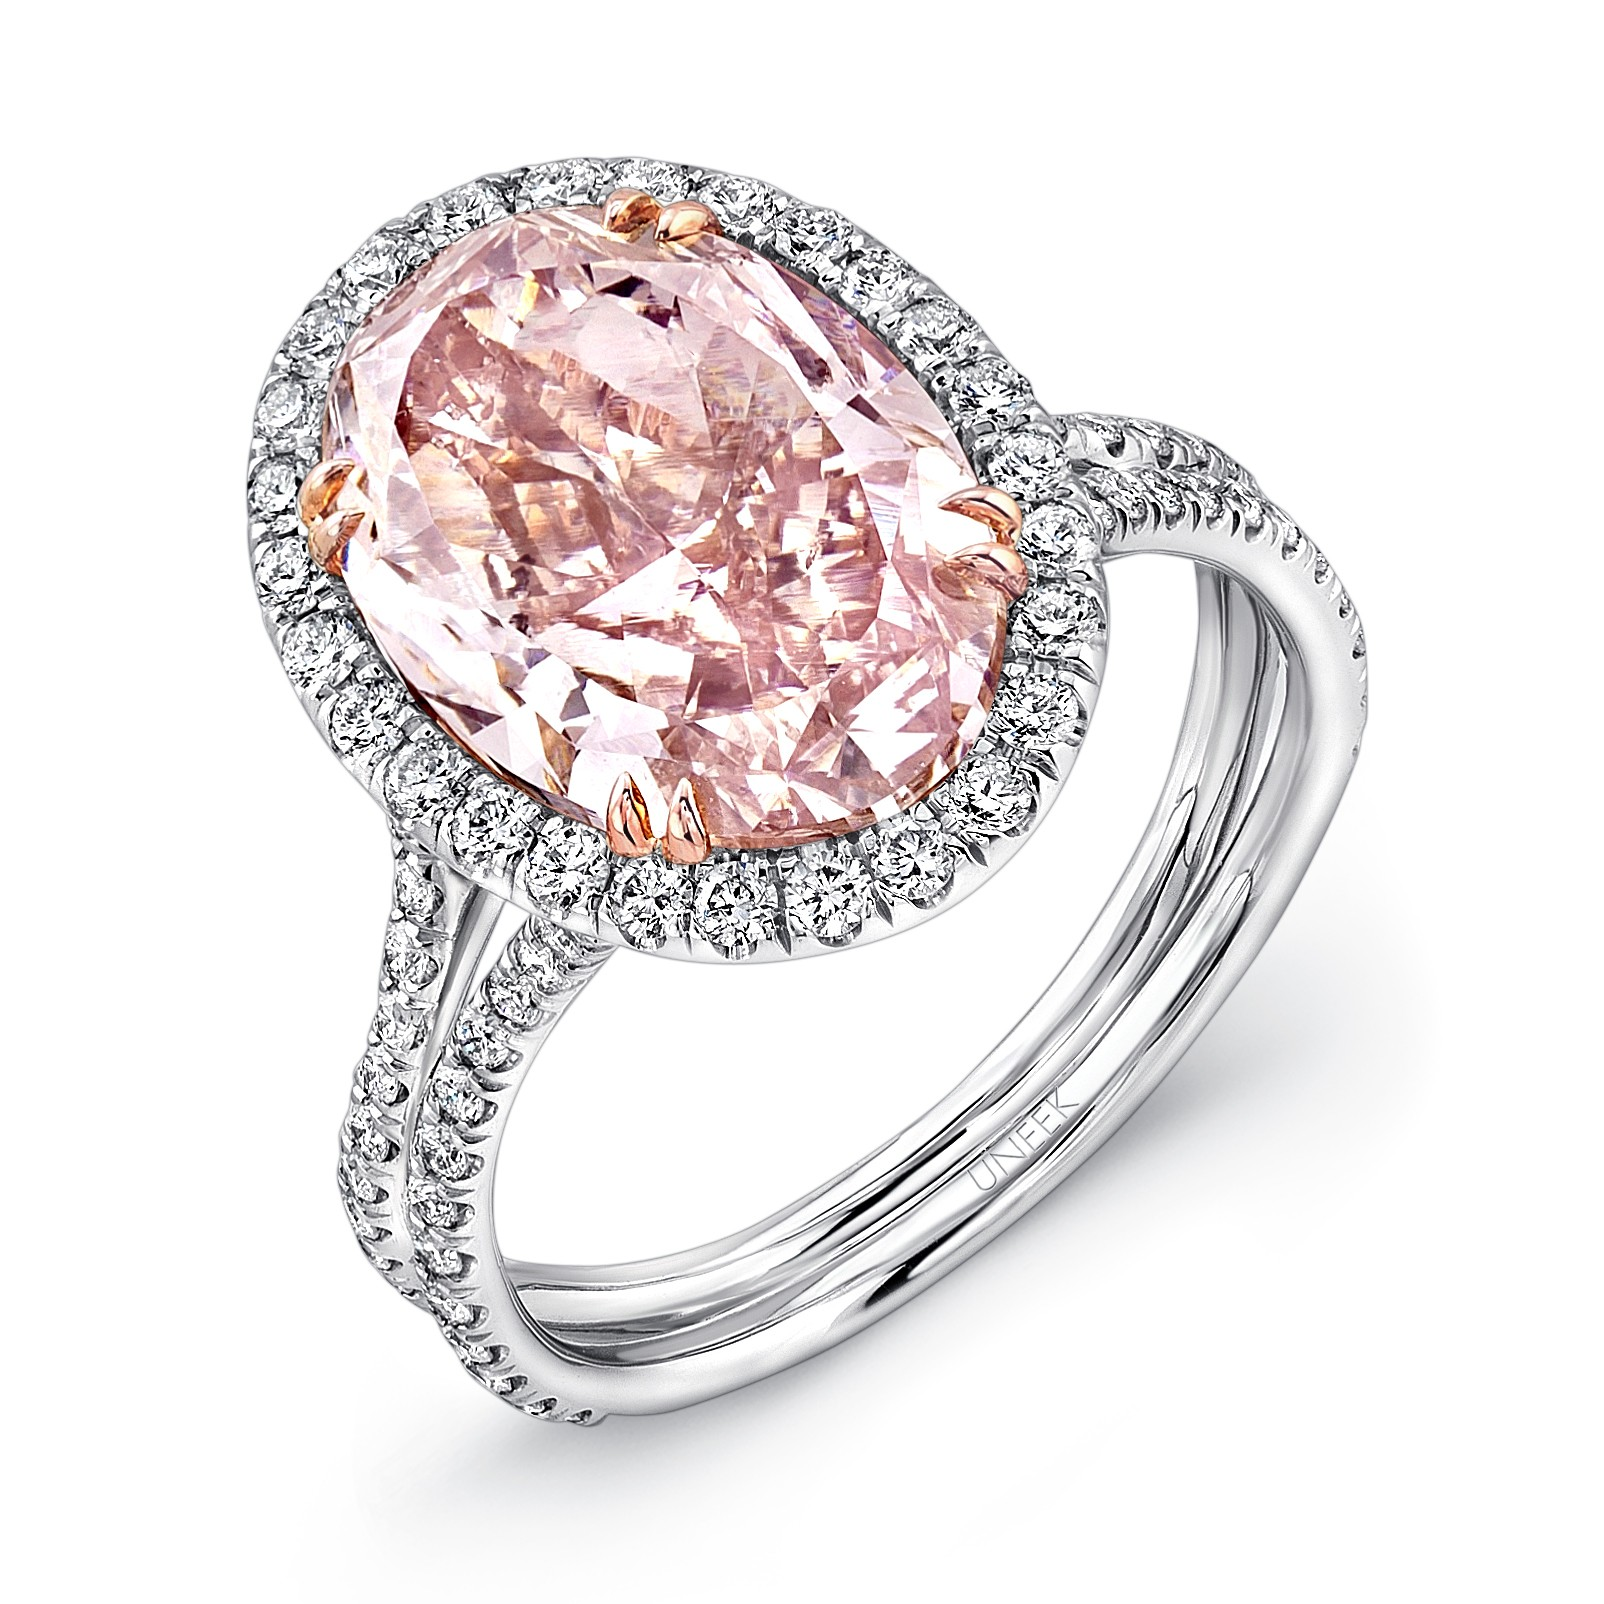 pink diamond engagement rings pink wedding rings LVS Uneek Oval Fancy Brown Pink Diamond Halo Engagement Ring with Silhouette Double Shank in Platinum and 18K Rose Gold